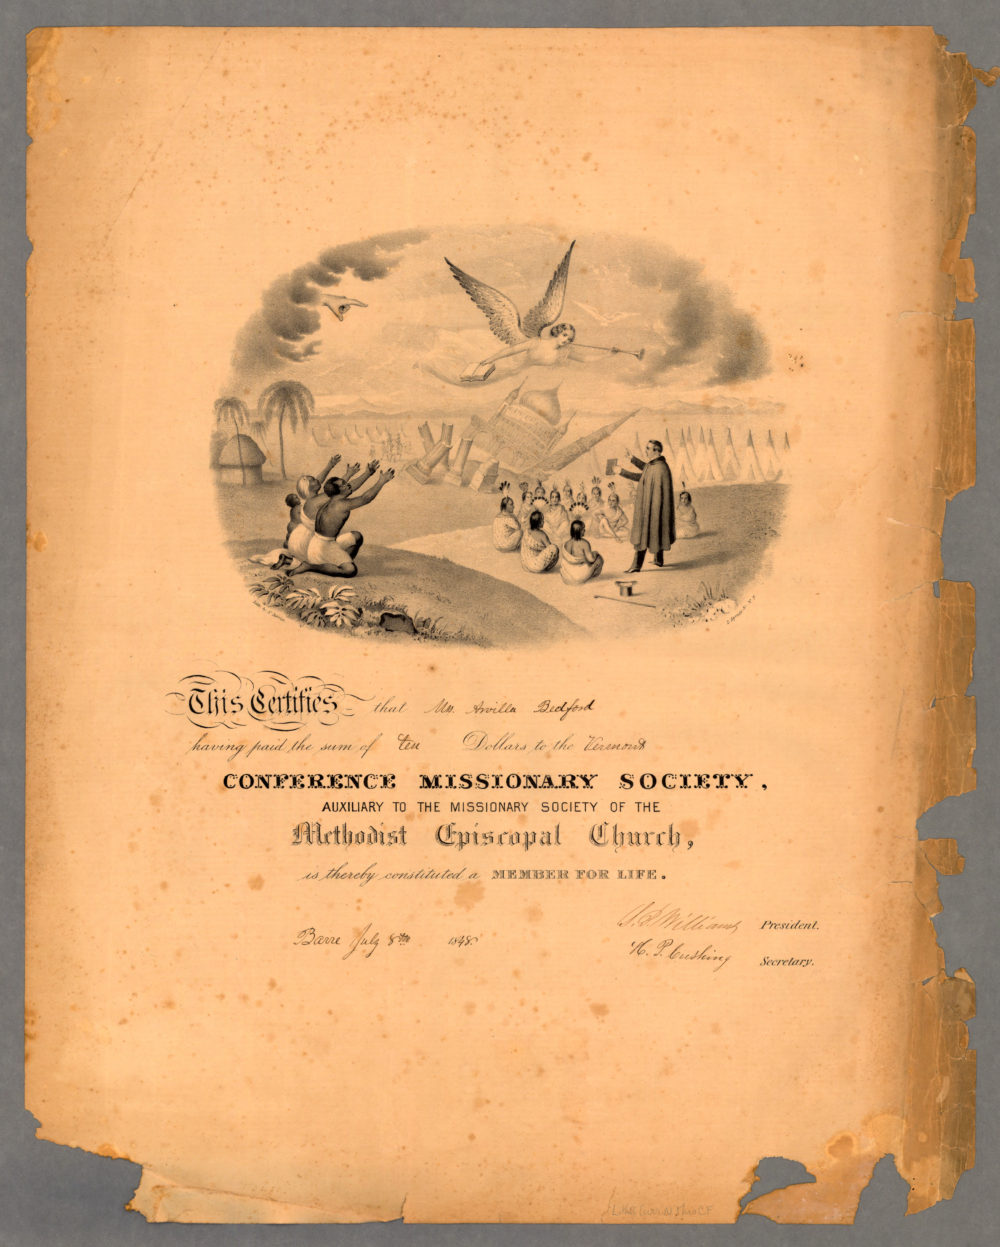 N. Currier, Membership Certificate to [Vermont] Conference Missionary Society, 1848, via American Antiquarian Society.